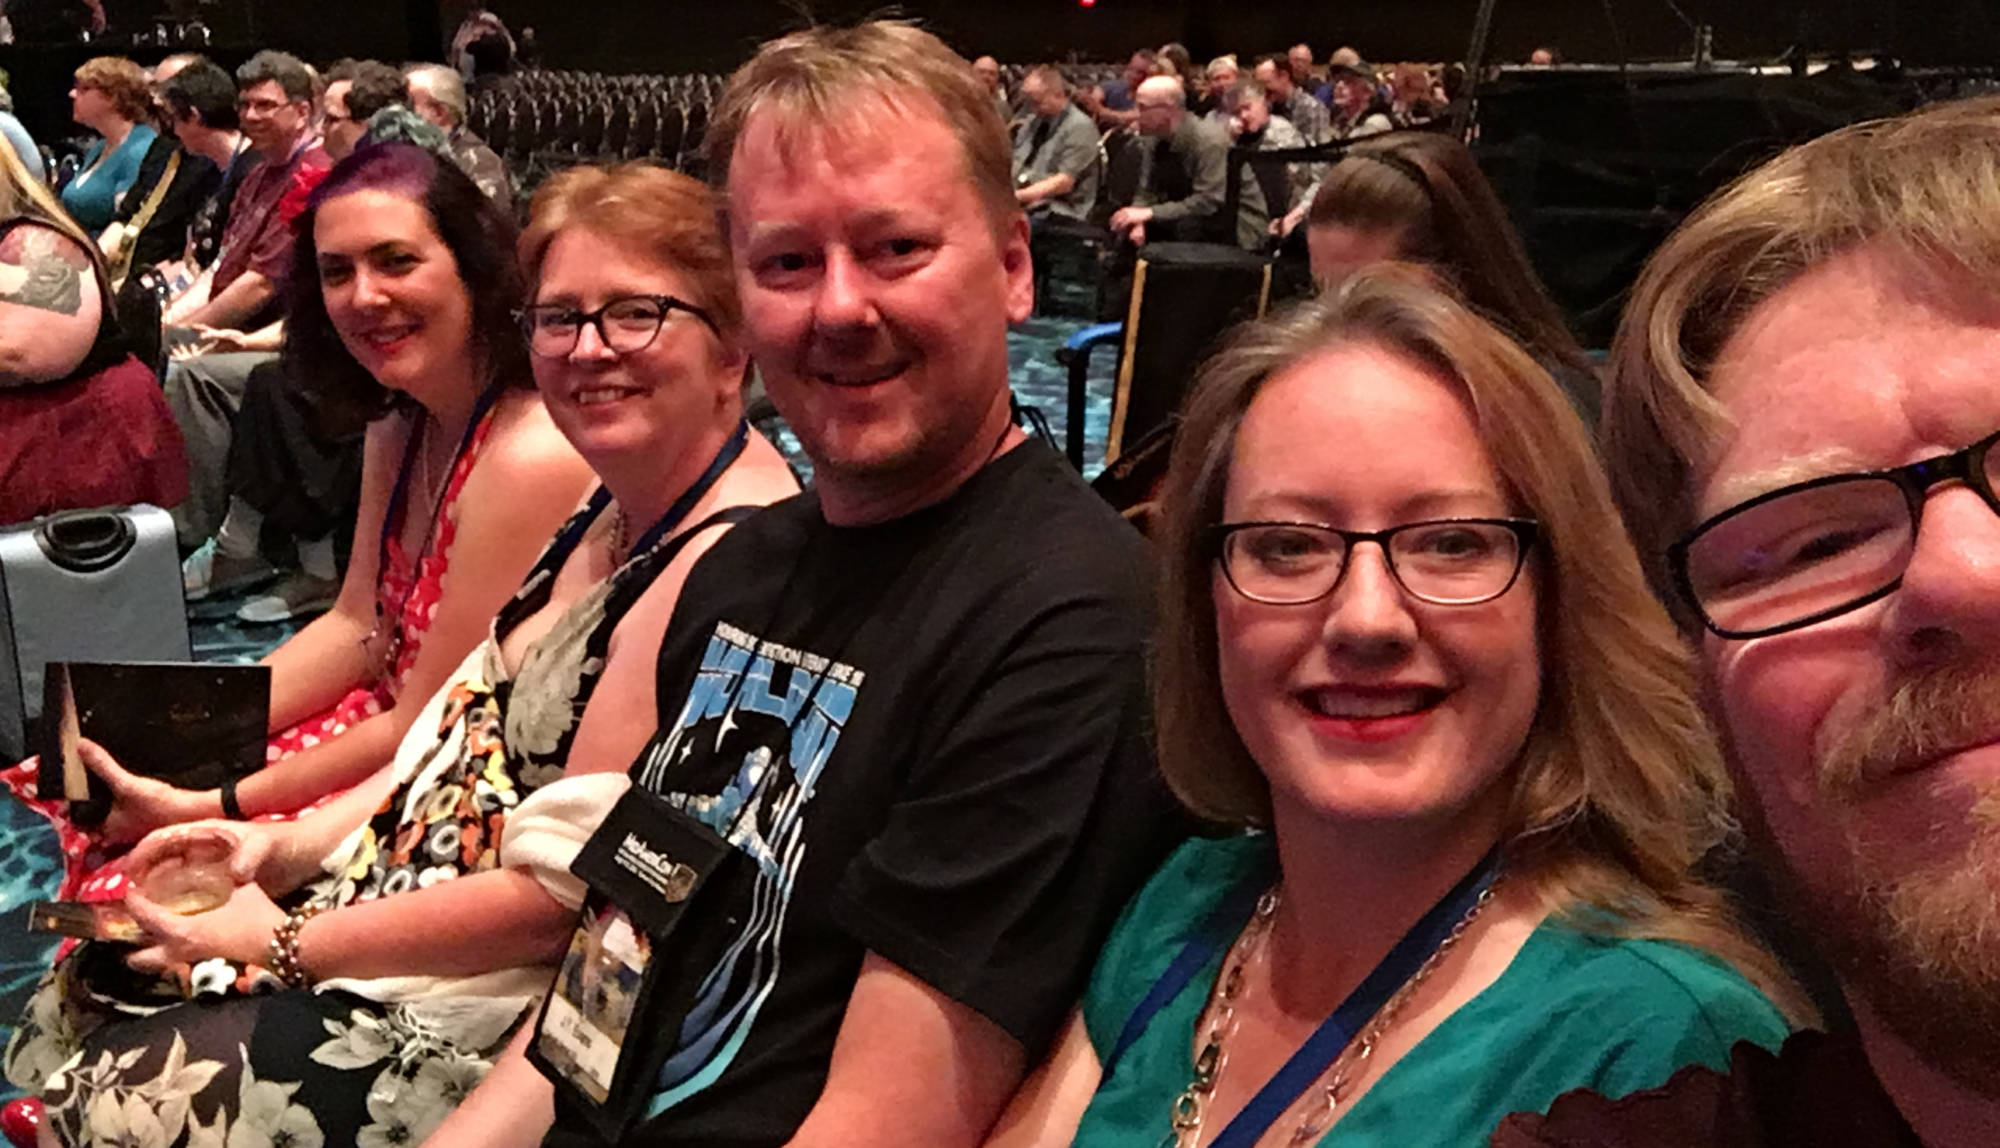 Shannon Lawrence, MB Partlow, JT Evans, Tamsyn Coulon & Patrick Hester at the Hugo Awards - MidAmericon 2 - the 2016 WorldCon in Kansas City